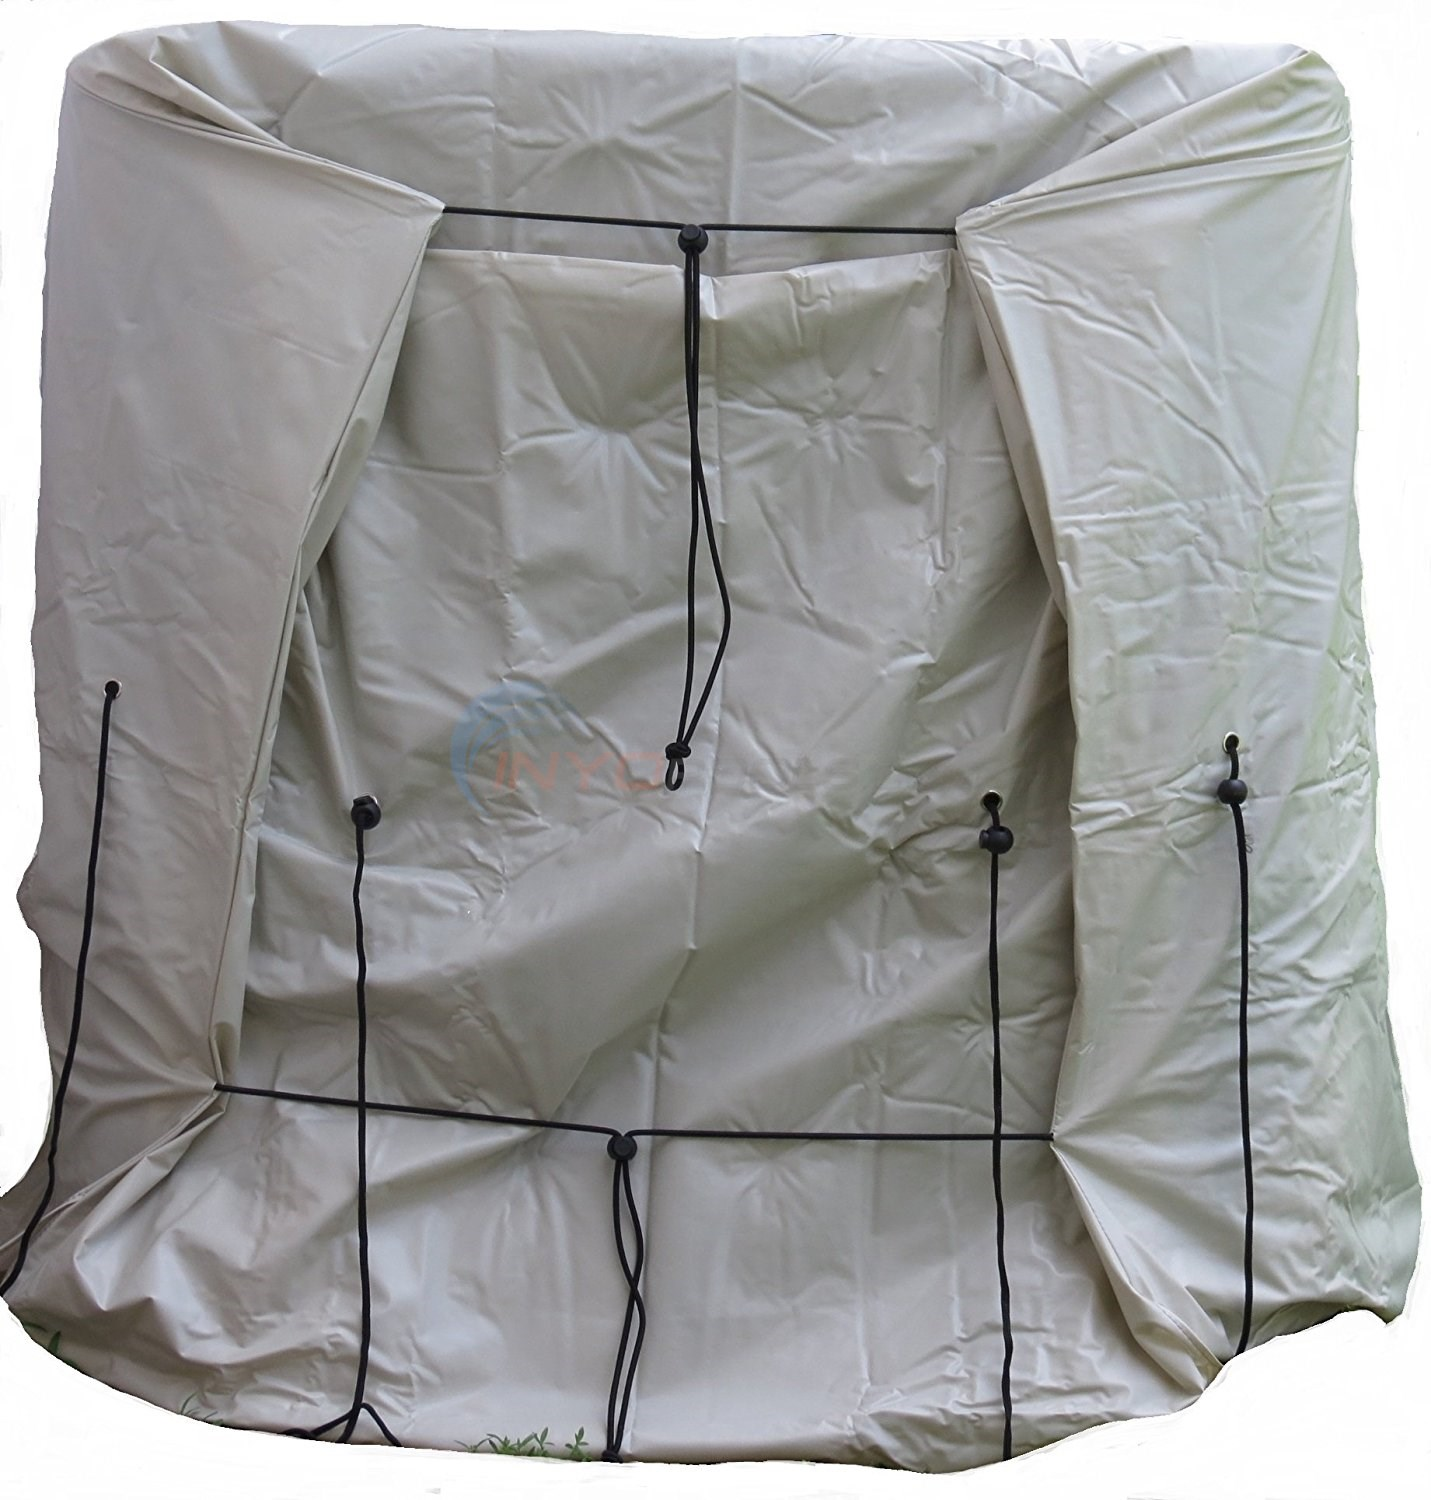 Pool Heater Cover-One Size Fits Most_ Out of Stock for 2018